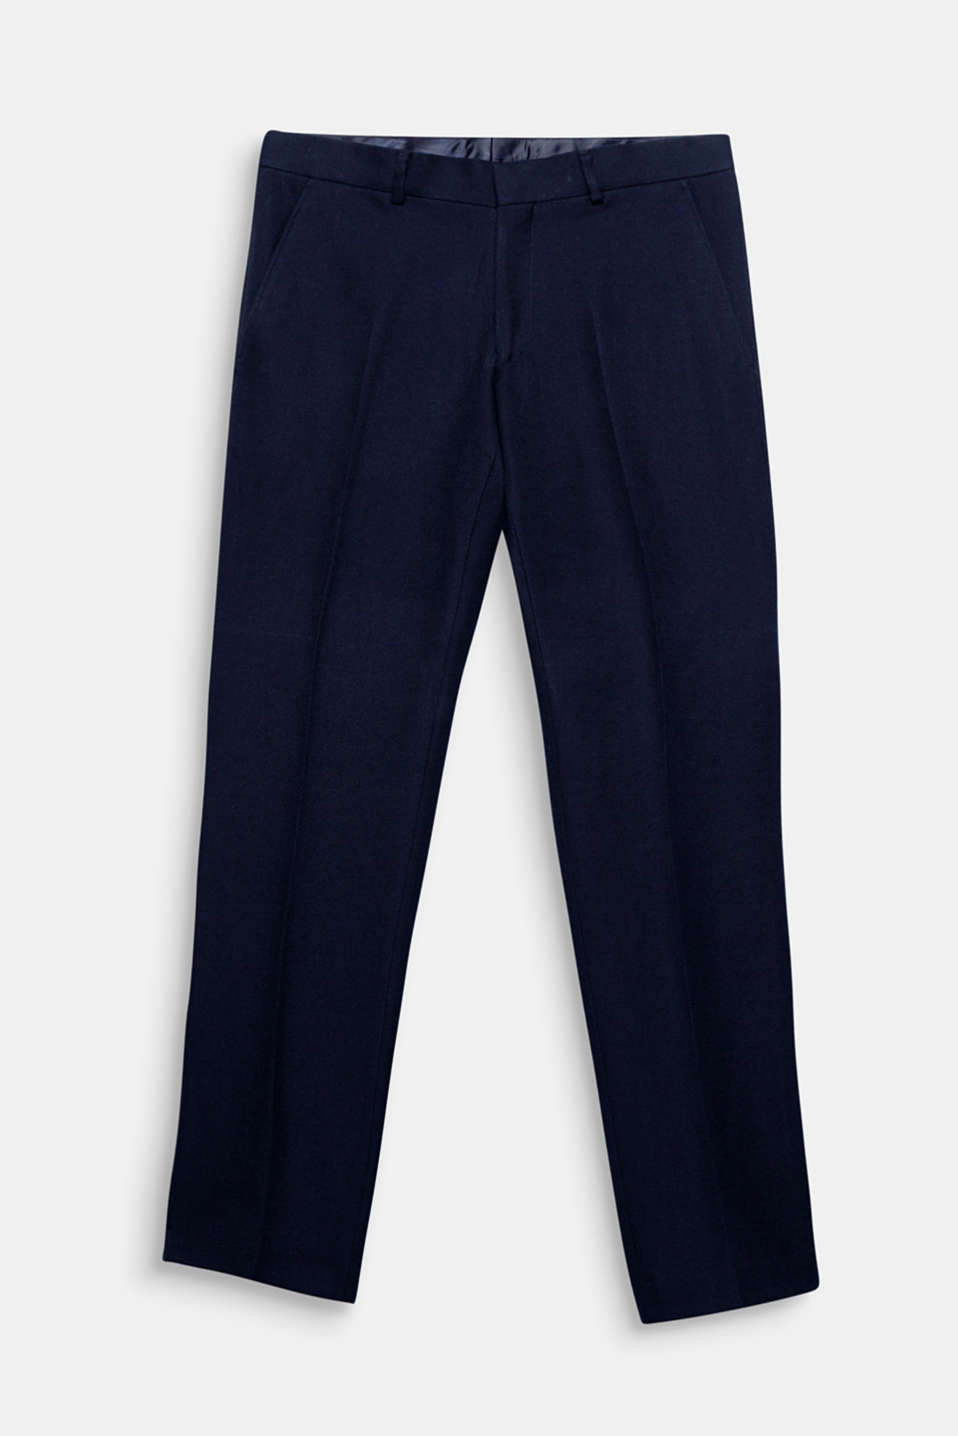 We love texture! The fine waffle texture makes these suit trousers with waist pleats a modern update for your suit look.